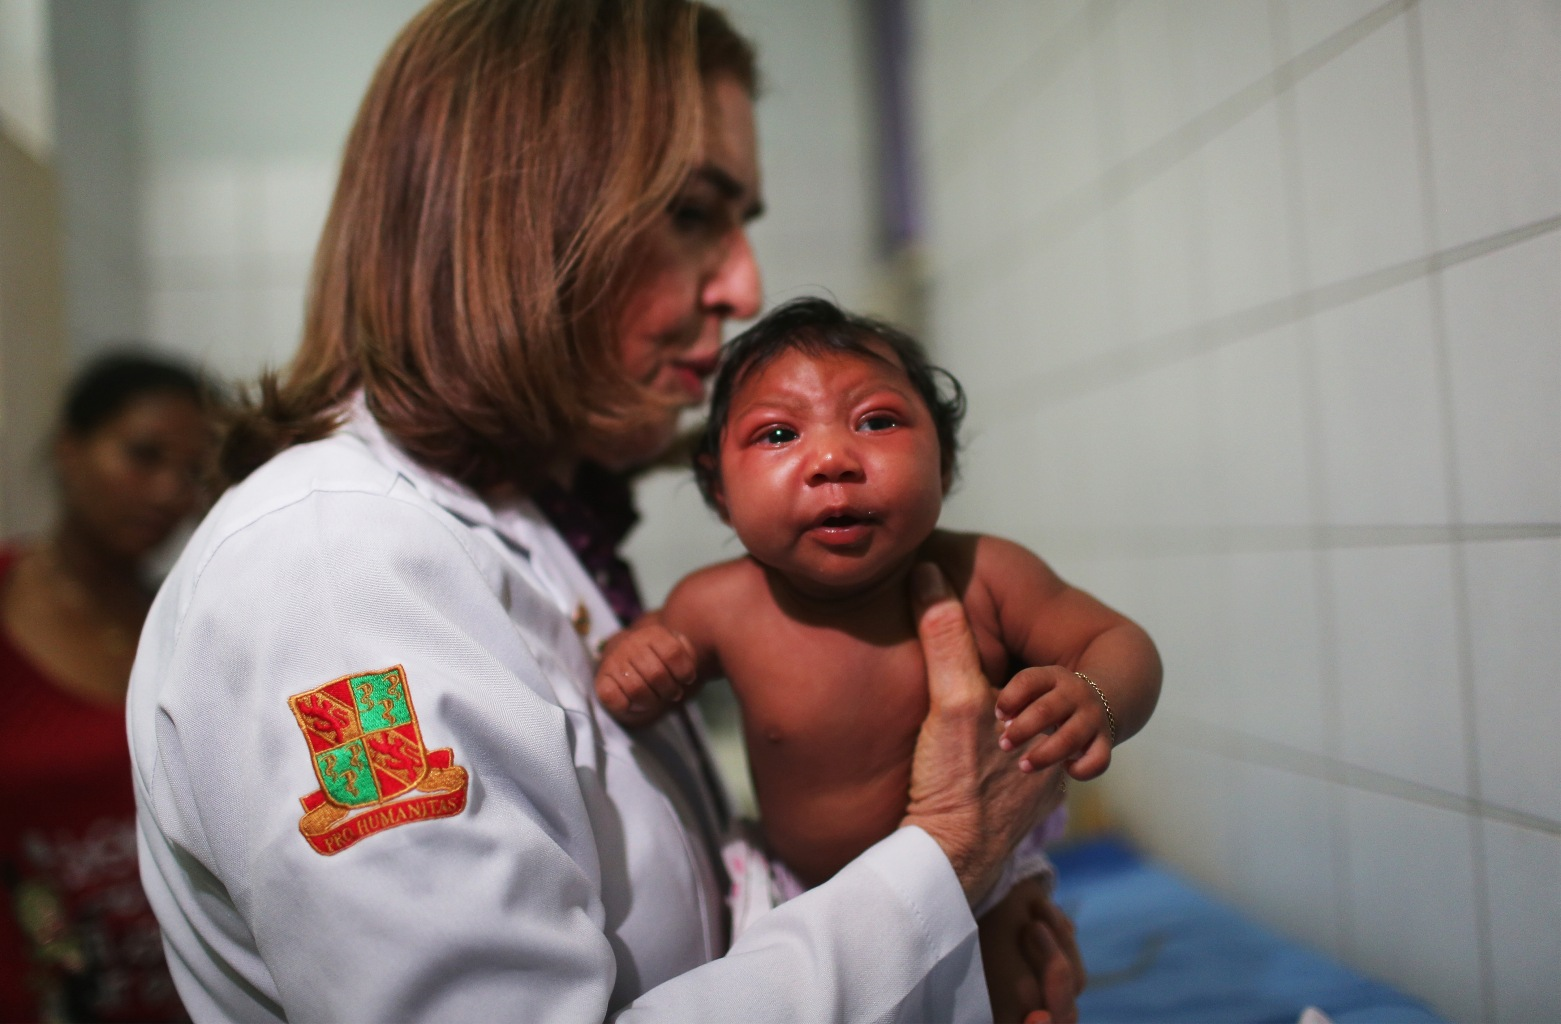 RECIFE, BRAZIL - JANUARY 26: Dr. Angela Rocha (C), pediatric infectologist at Oswaldo Cruz Hospital, examines Ludmilla Hadassa Dias de Vasconcelos (2 months), who has microcephaly, on January 26, 2016 in Recife, Brazil. In the last four months, authorities have recorded close to 4,000 cases in Brazil in which the mosquito-borne Zika virus may have led to microcephaly in infants. The ailment results in an abnormally small head in newborns and is associated with various disorders including decreased brain development. According to the World Health Organization (WHO), the Zika virus outbreak is likely to spread throughout nearly all the Americas. At least twelve cases in the United States have now been confirmed by the CDC. Brazil reported the first cases in the Americas of local transmissions of the virus last year. (Photo by Mario Tama/Getty Images)